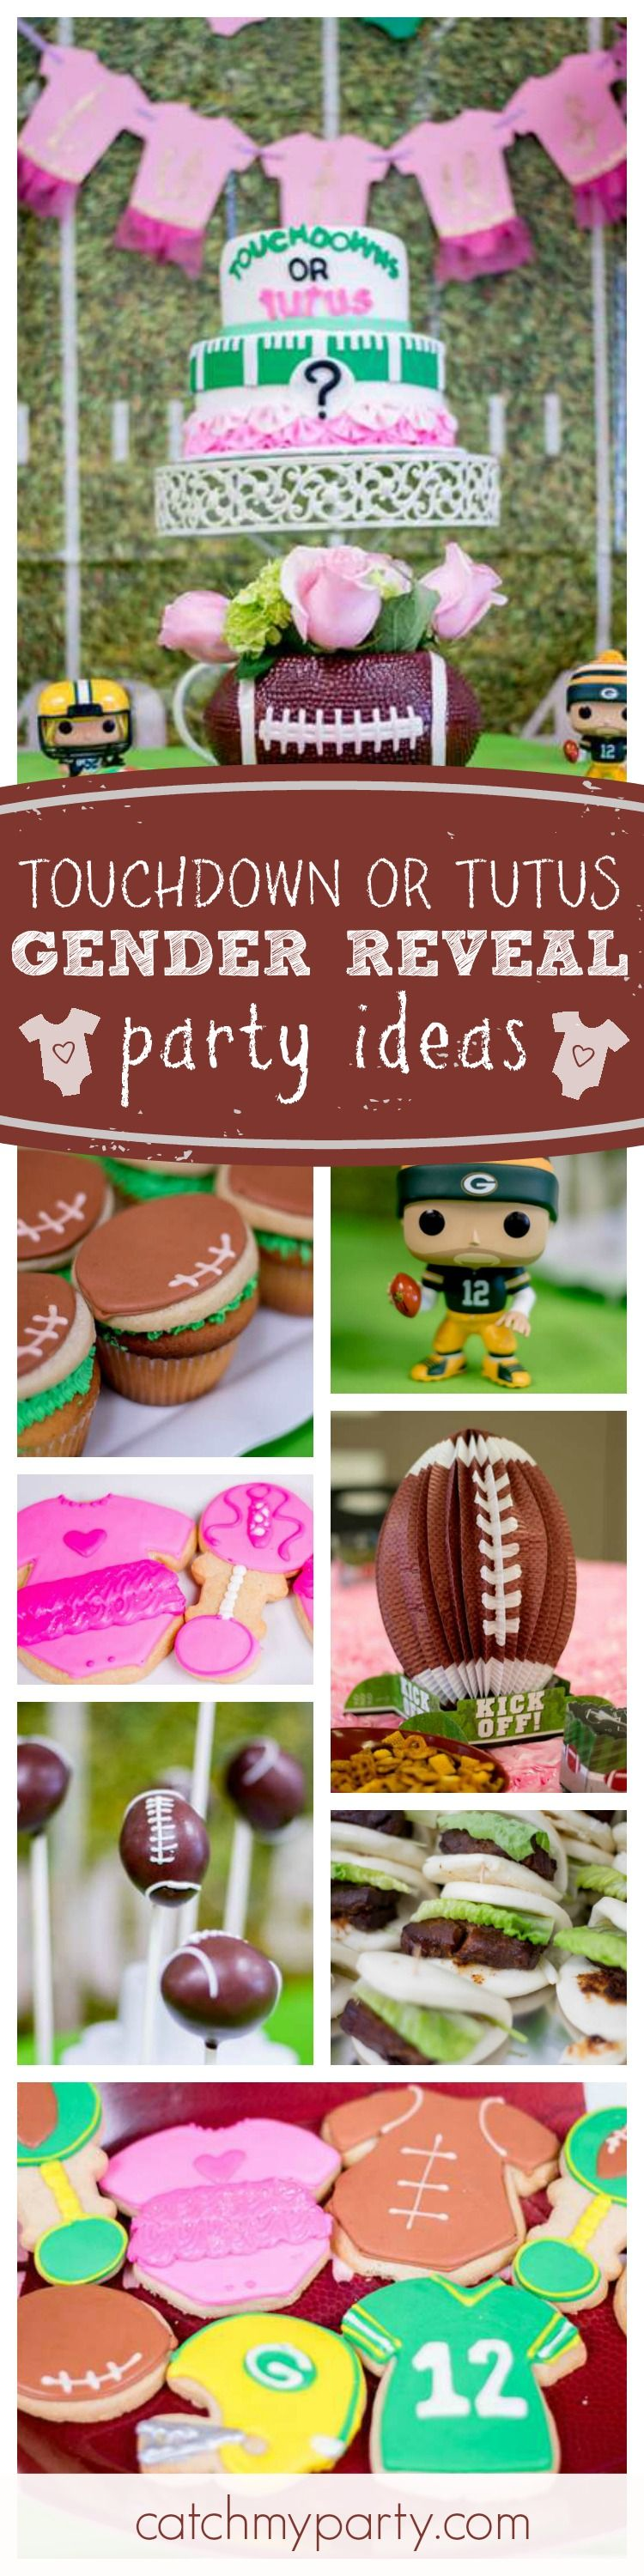 Touchdown Or Tutus Gender Reveal Touchdown Or Tutus Gender Reveal Party Catch My Party Tutus Gender Reveal Gender Reveal Party Baby Reveal Party